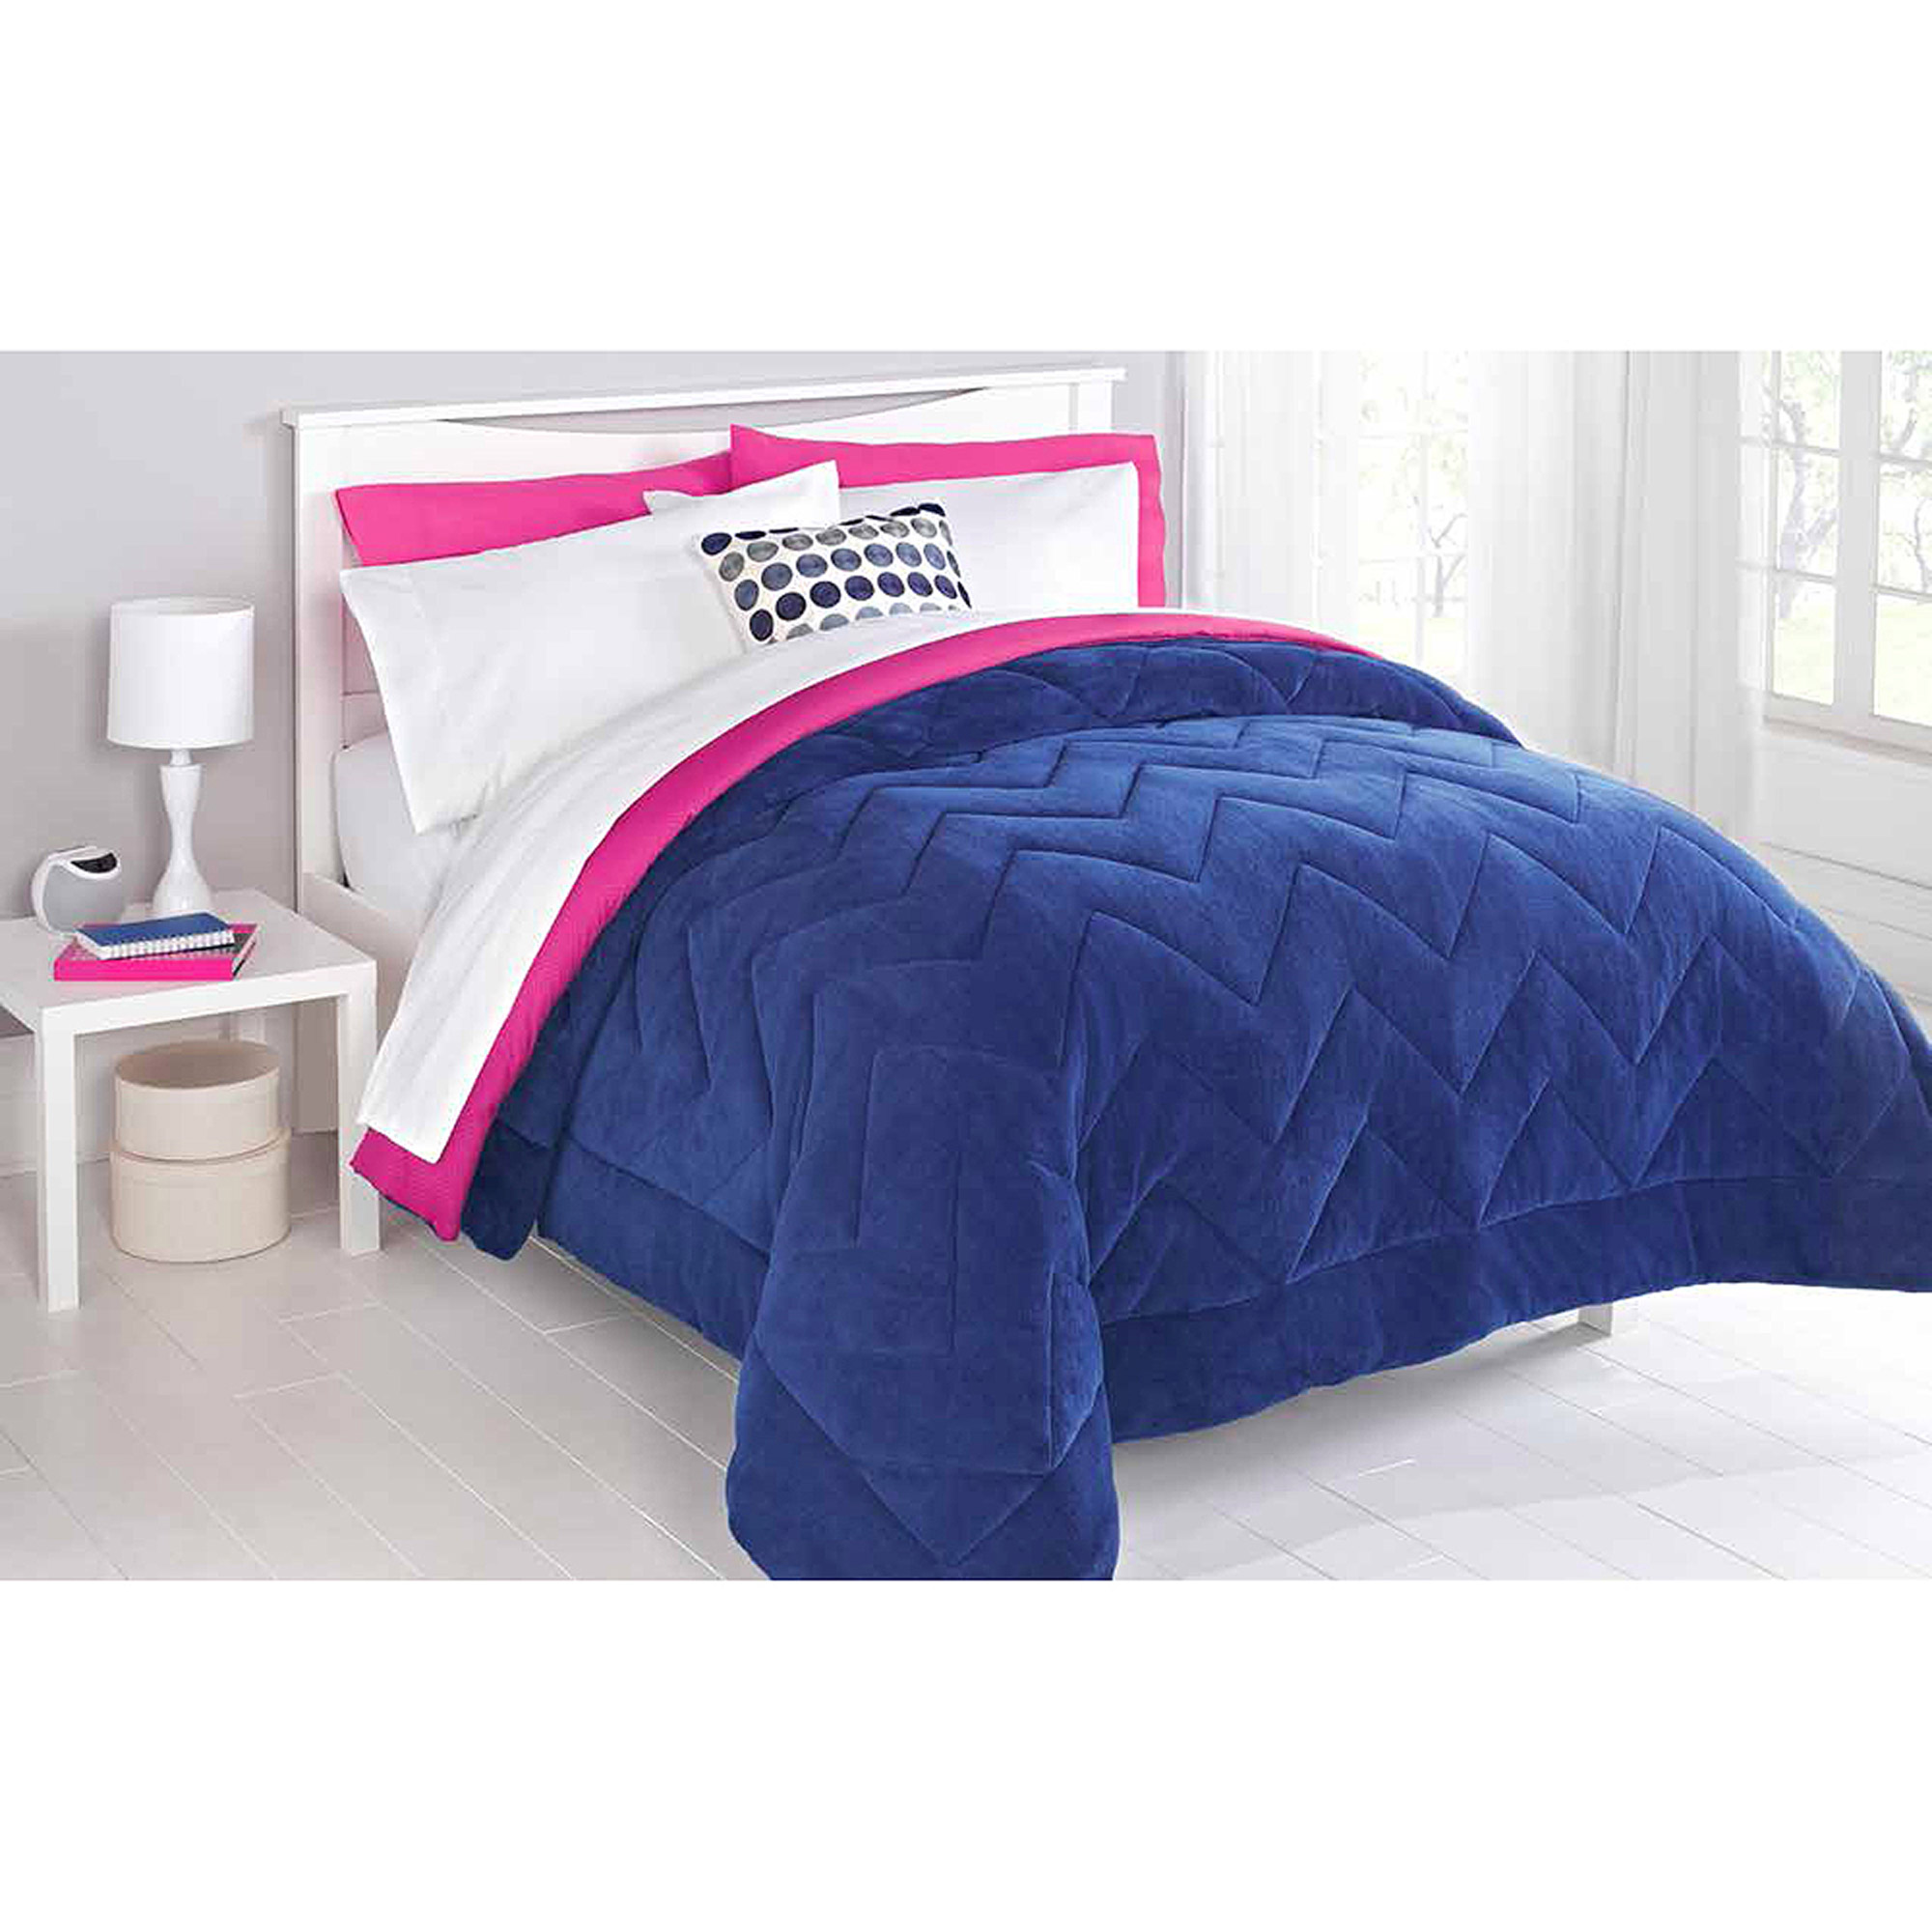 Mainstays Two-Toned Chevron-Stitched Reversible Plush Bedding Comforter